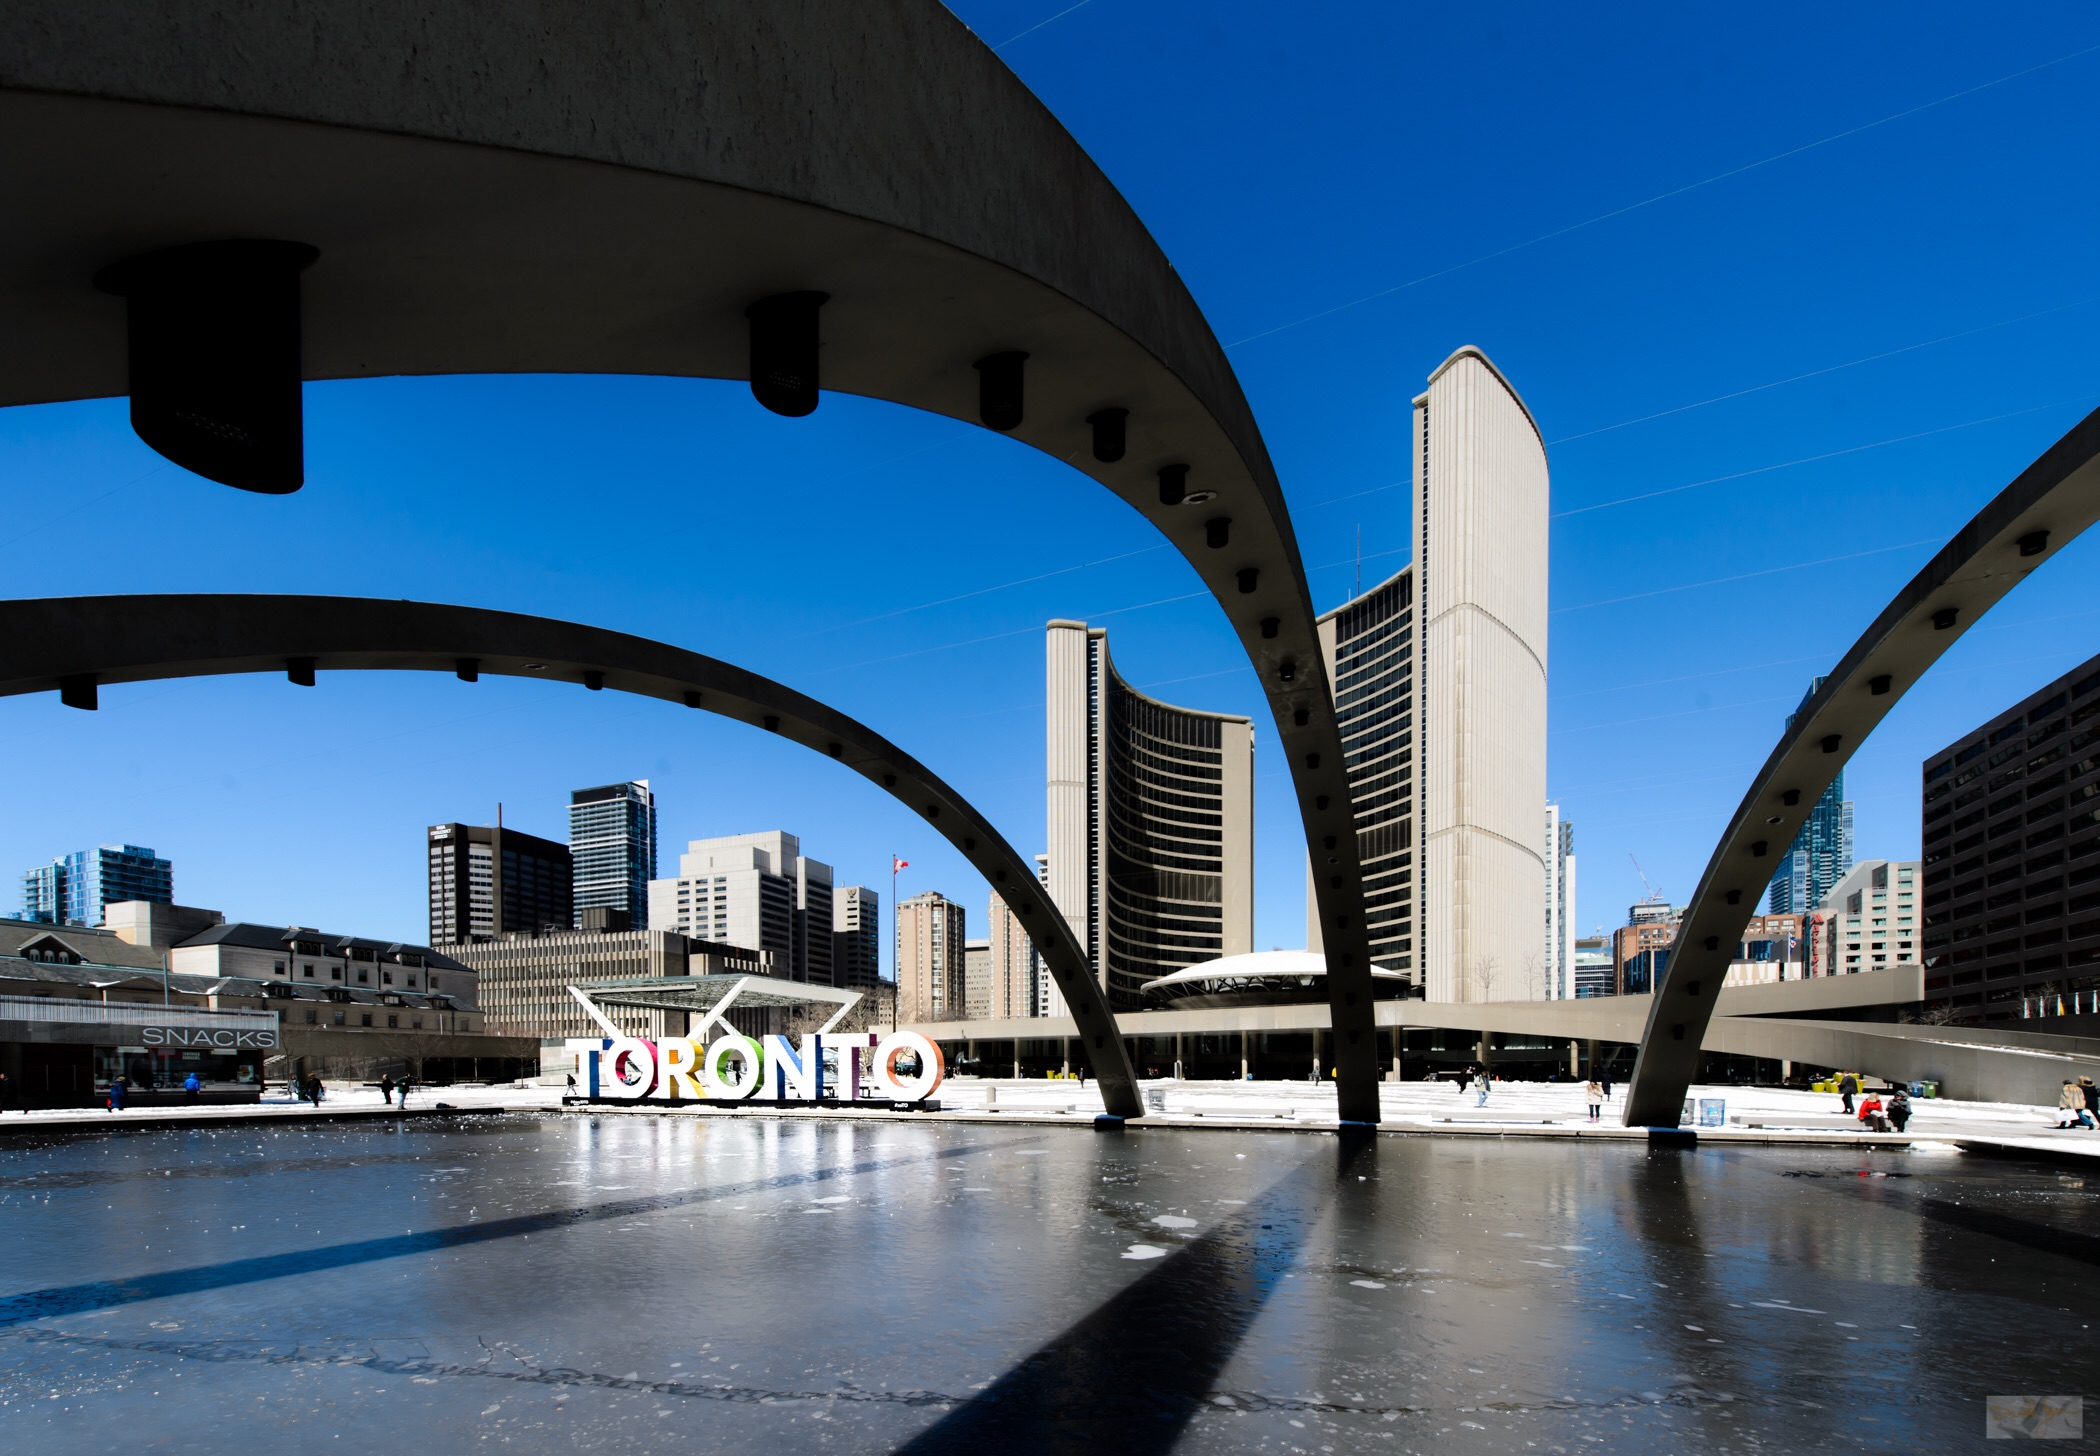 The Toronto sign in front of City Hall